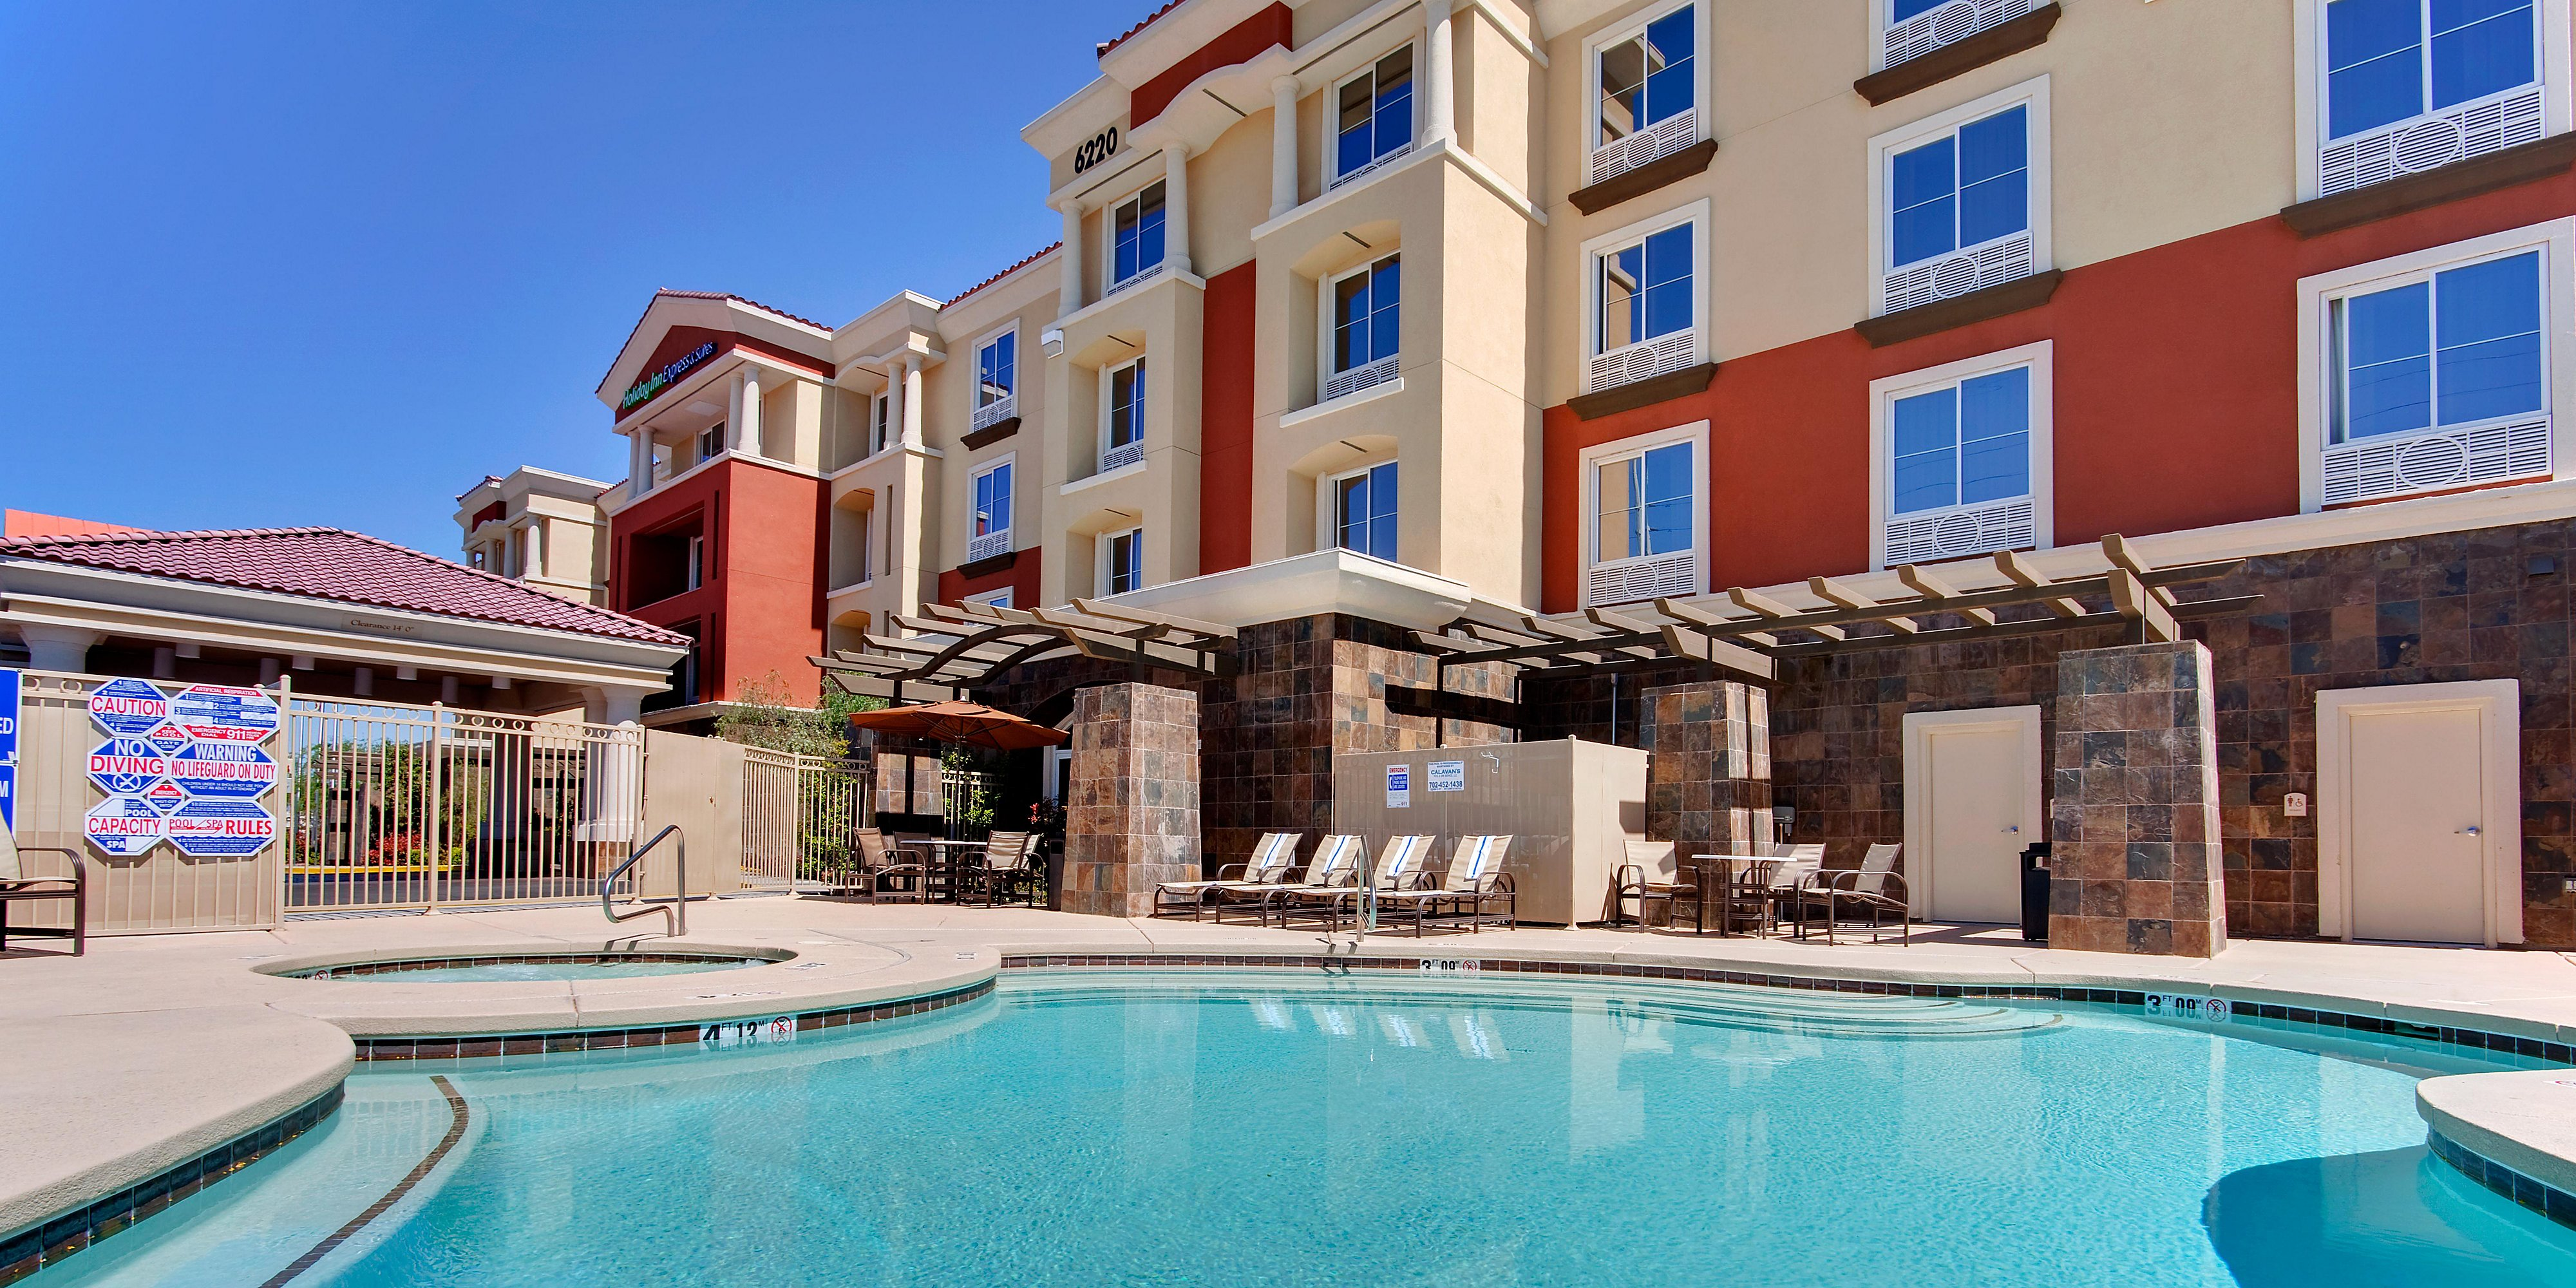 22ba8e770 Holiday Inn Express & Suites Las Vegas I-215 S. Beltway Hotel by IHG